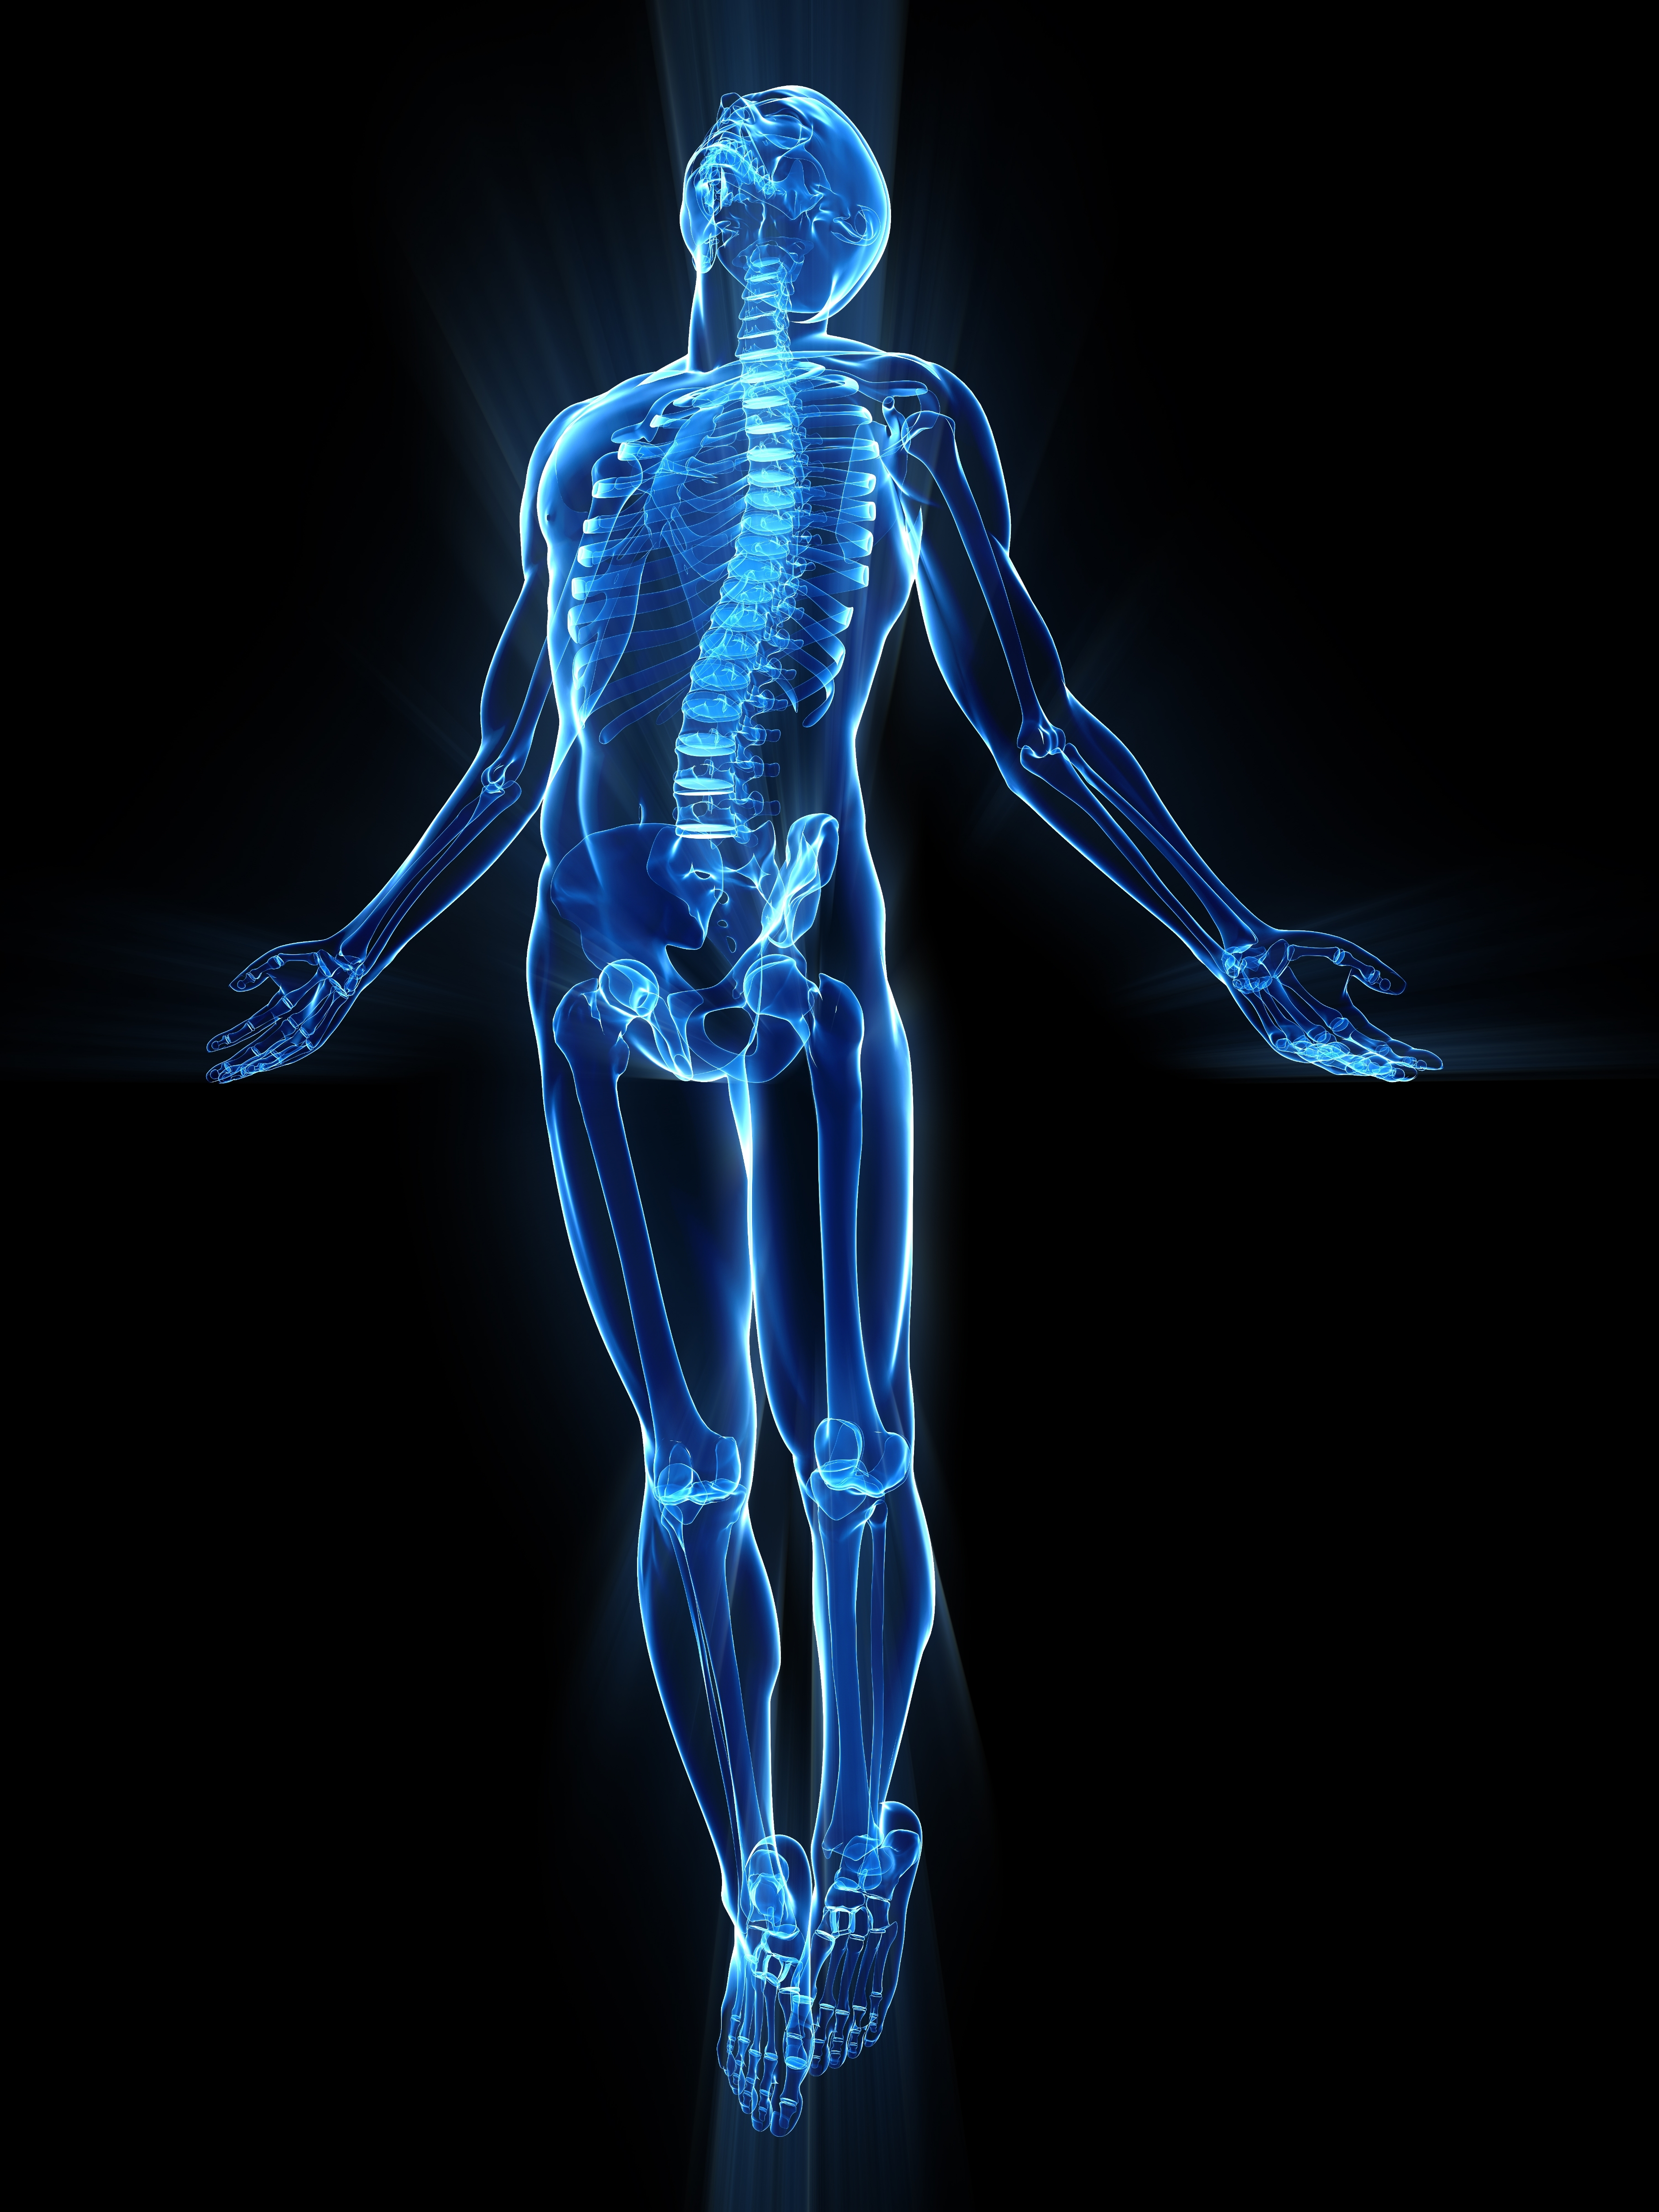 human body in xray format receiving electromagnetic pulses from PEMF therapy into his bones